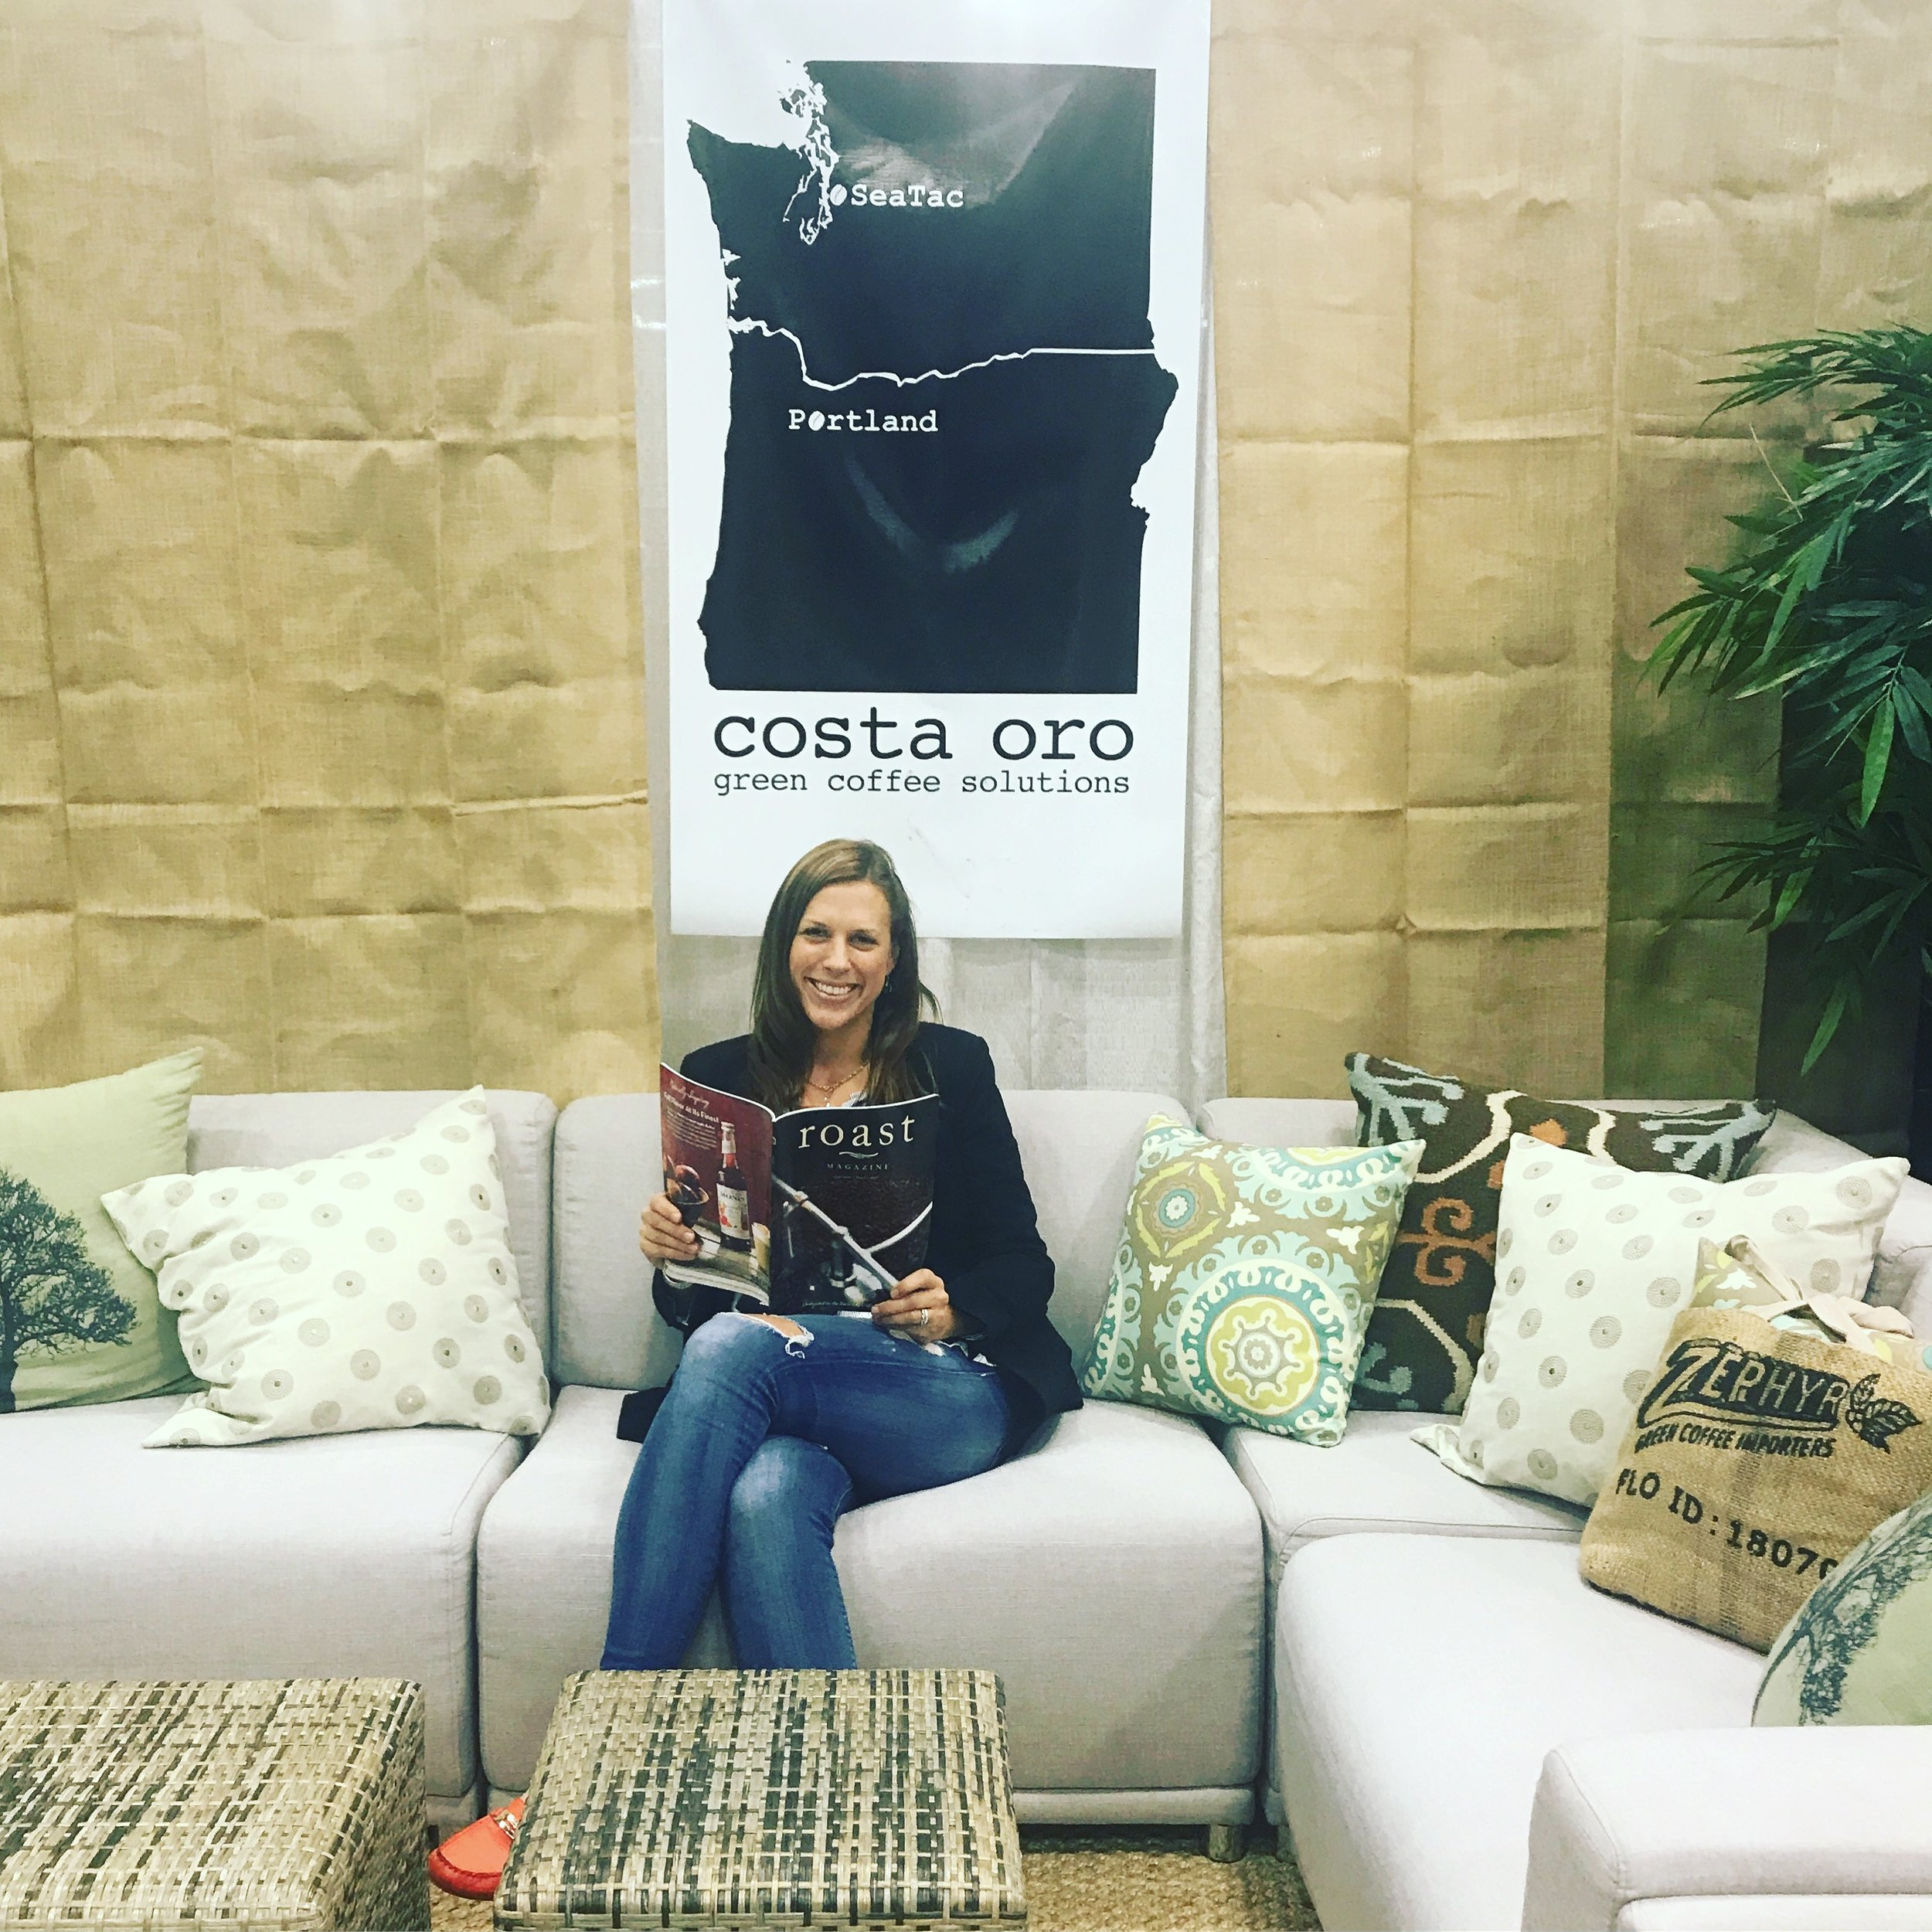 Arianna Hartstrom @ Costa Oro Booth for Coffee Fest Portland 2017